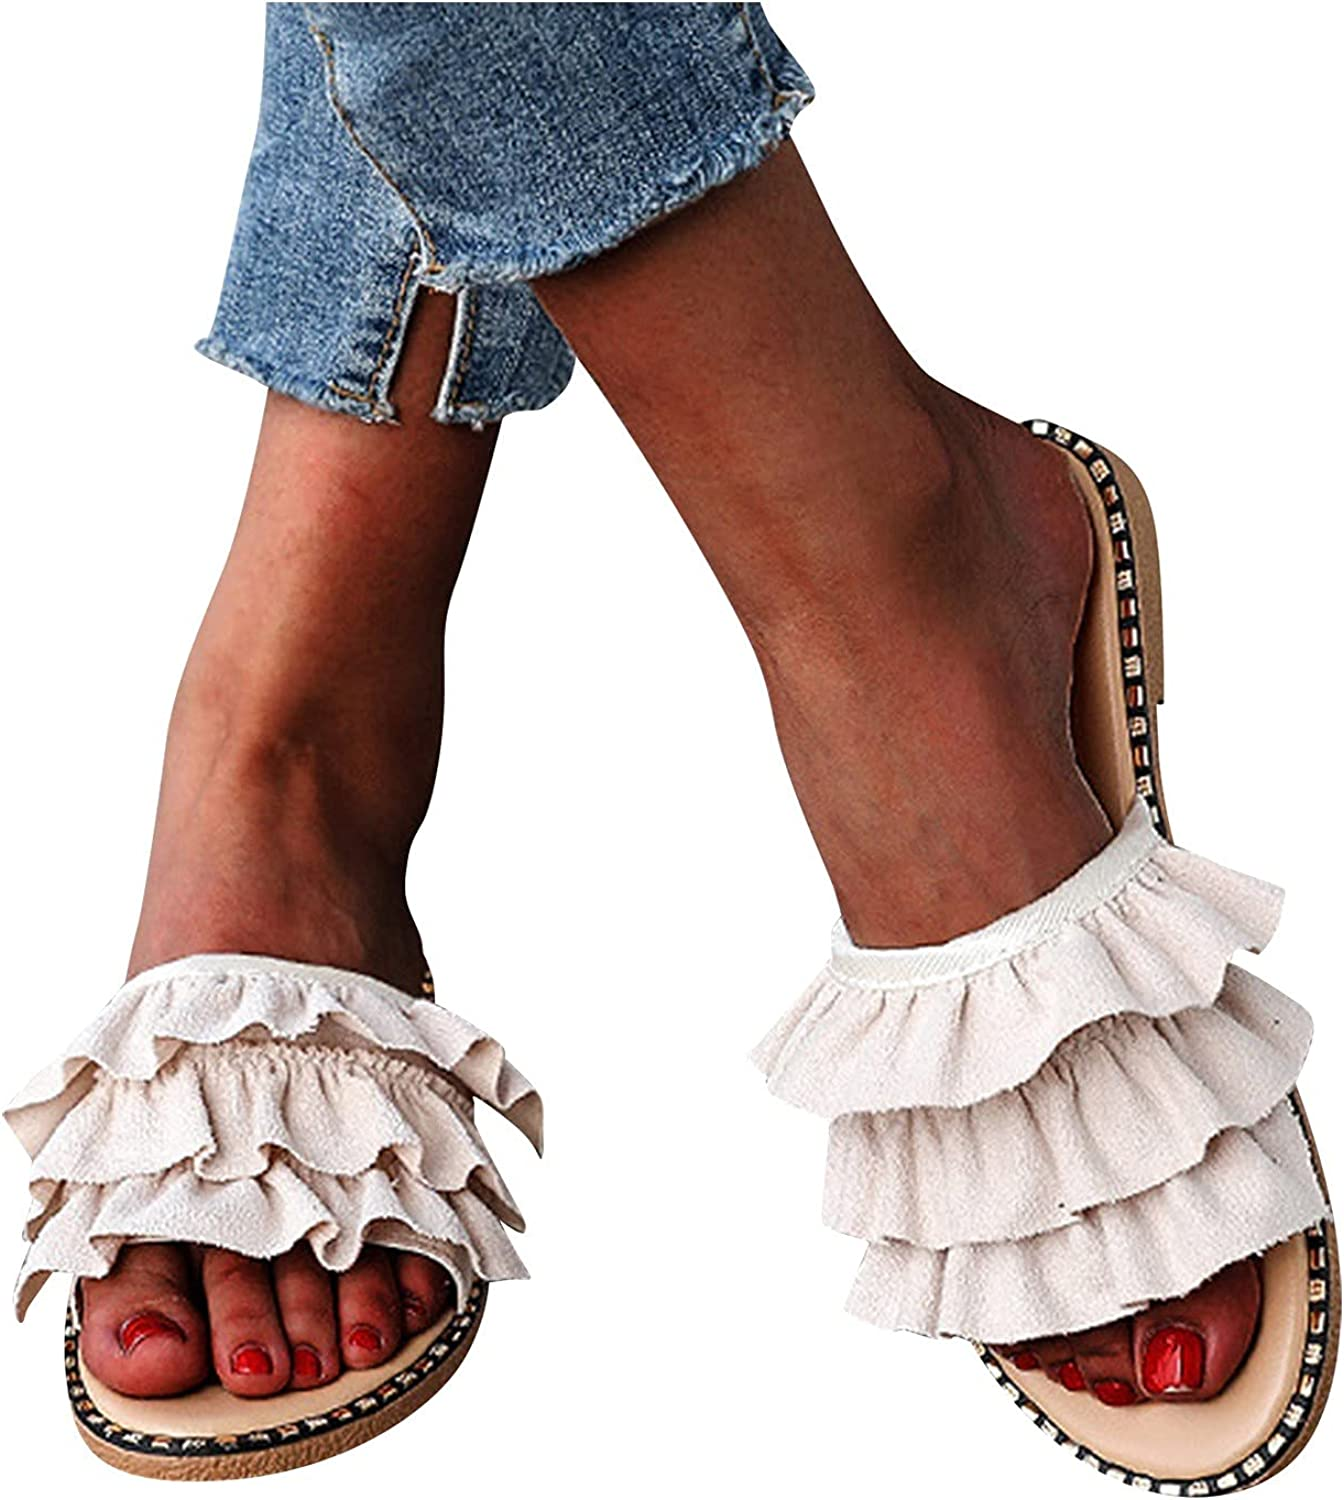 USYFAKGH Wide Width Sandals For Women Fashion Women's Casual Shoes Breathable Outdoor Pure Color Slippers